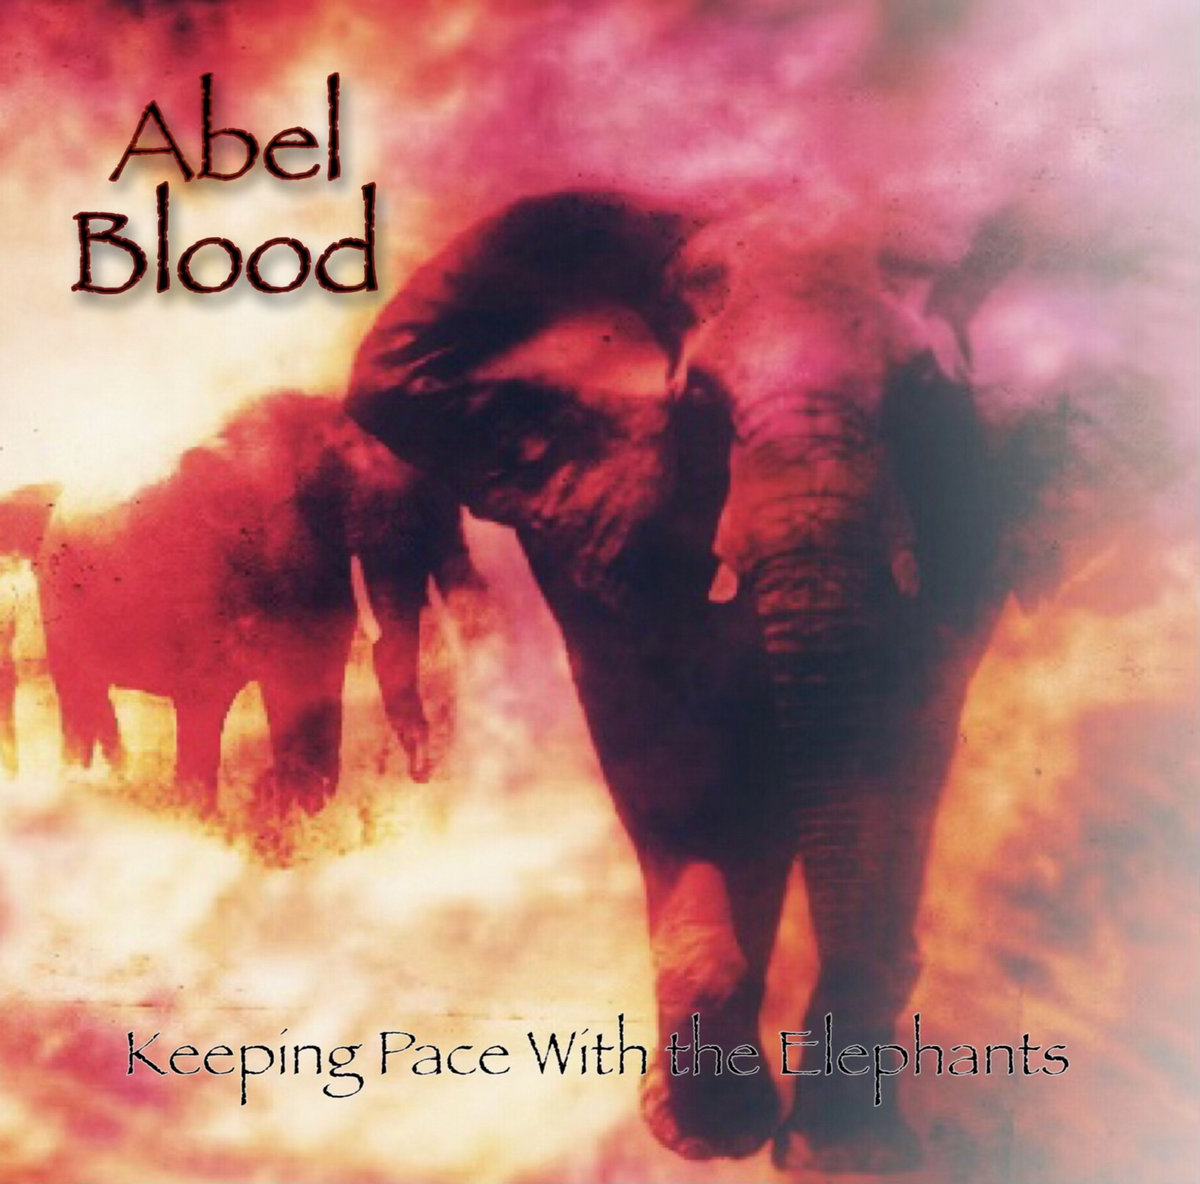 Abel Blood Keeping Pace with the Elephants